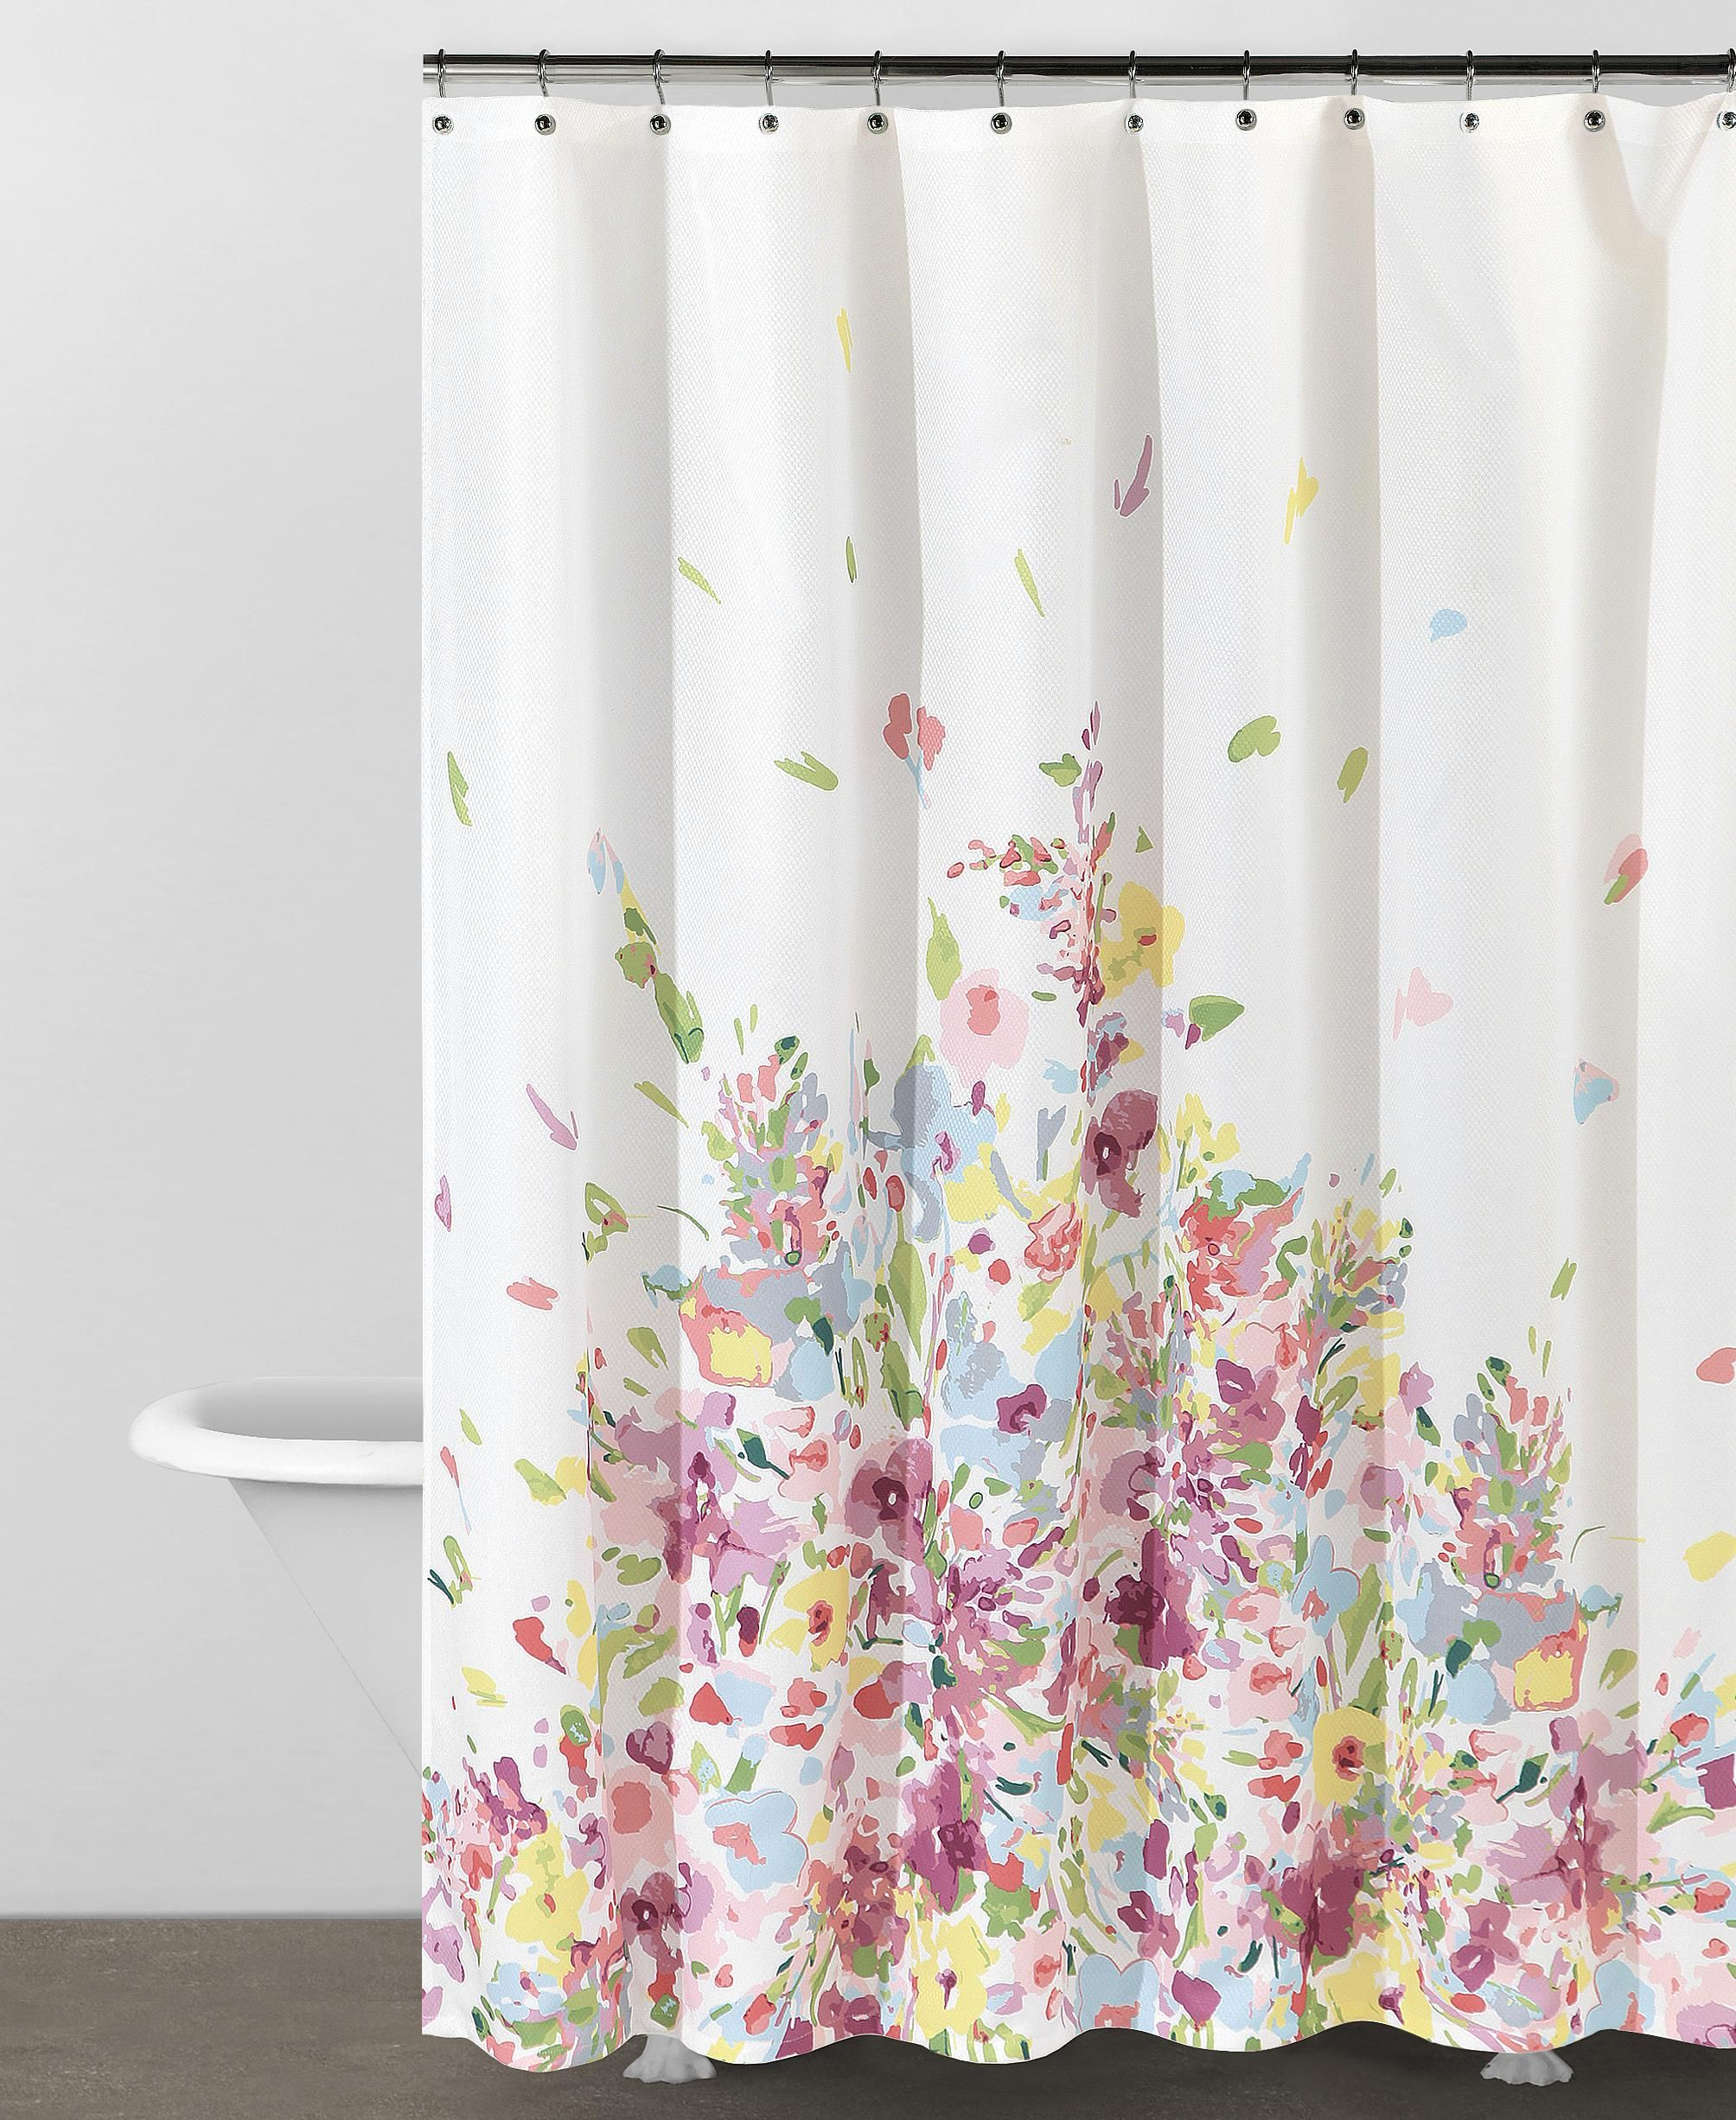 Delicate Watercolour Flowers On A Shower Curtain From Dkny At Bed